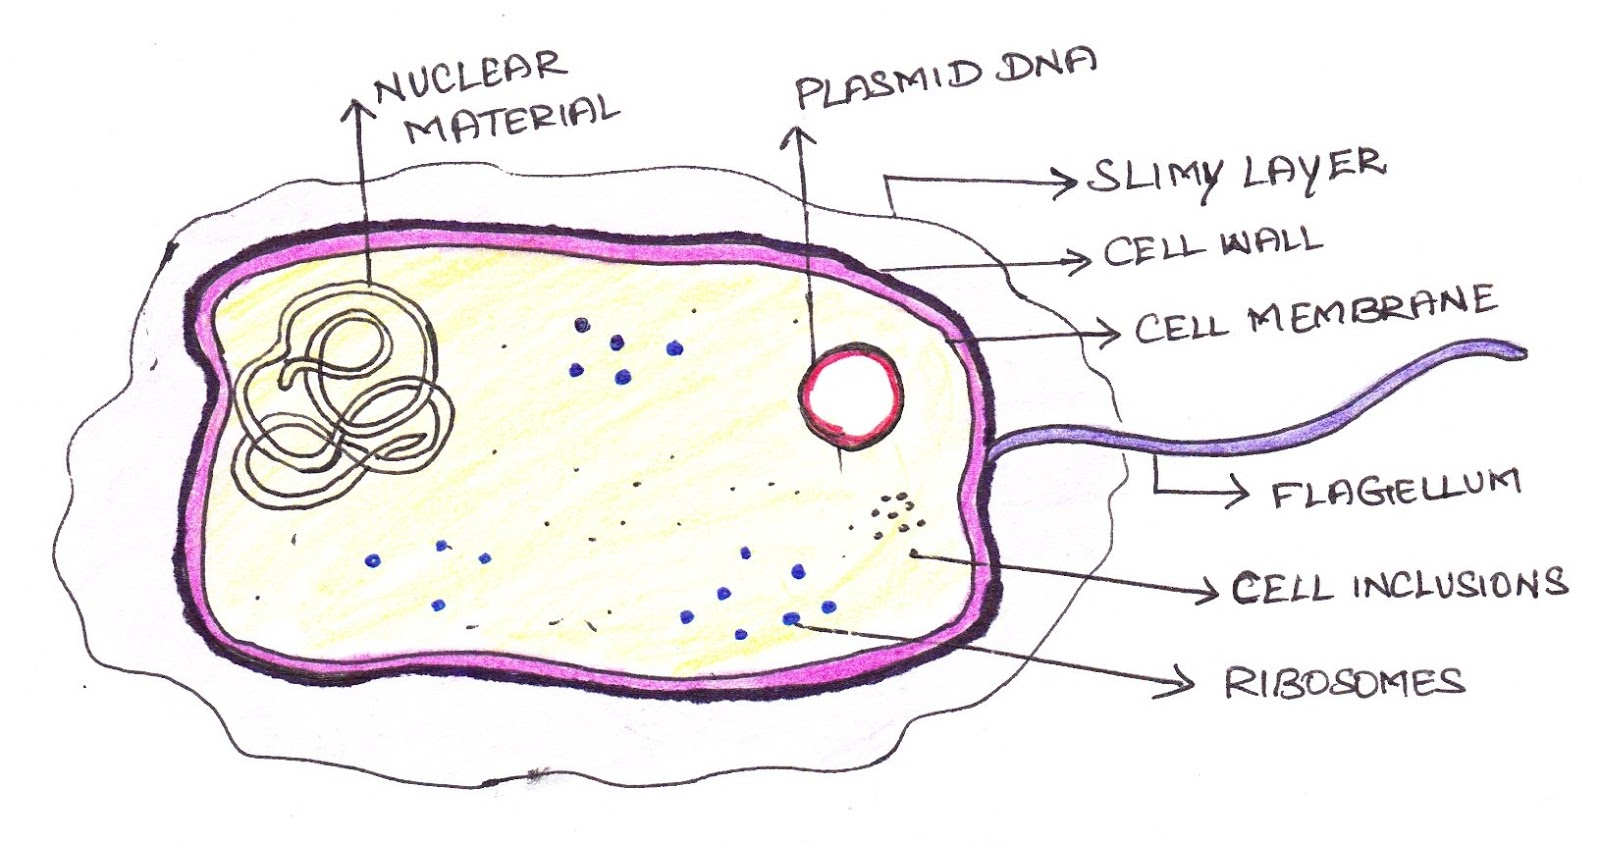 Vesicles in a human cell